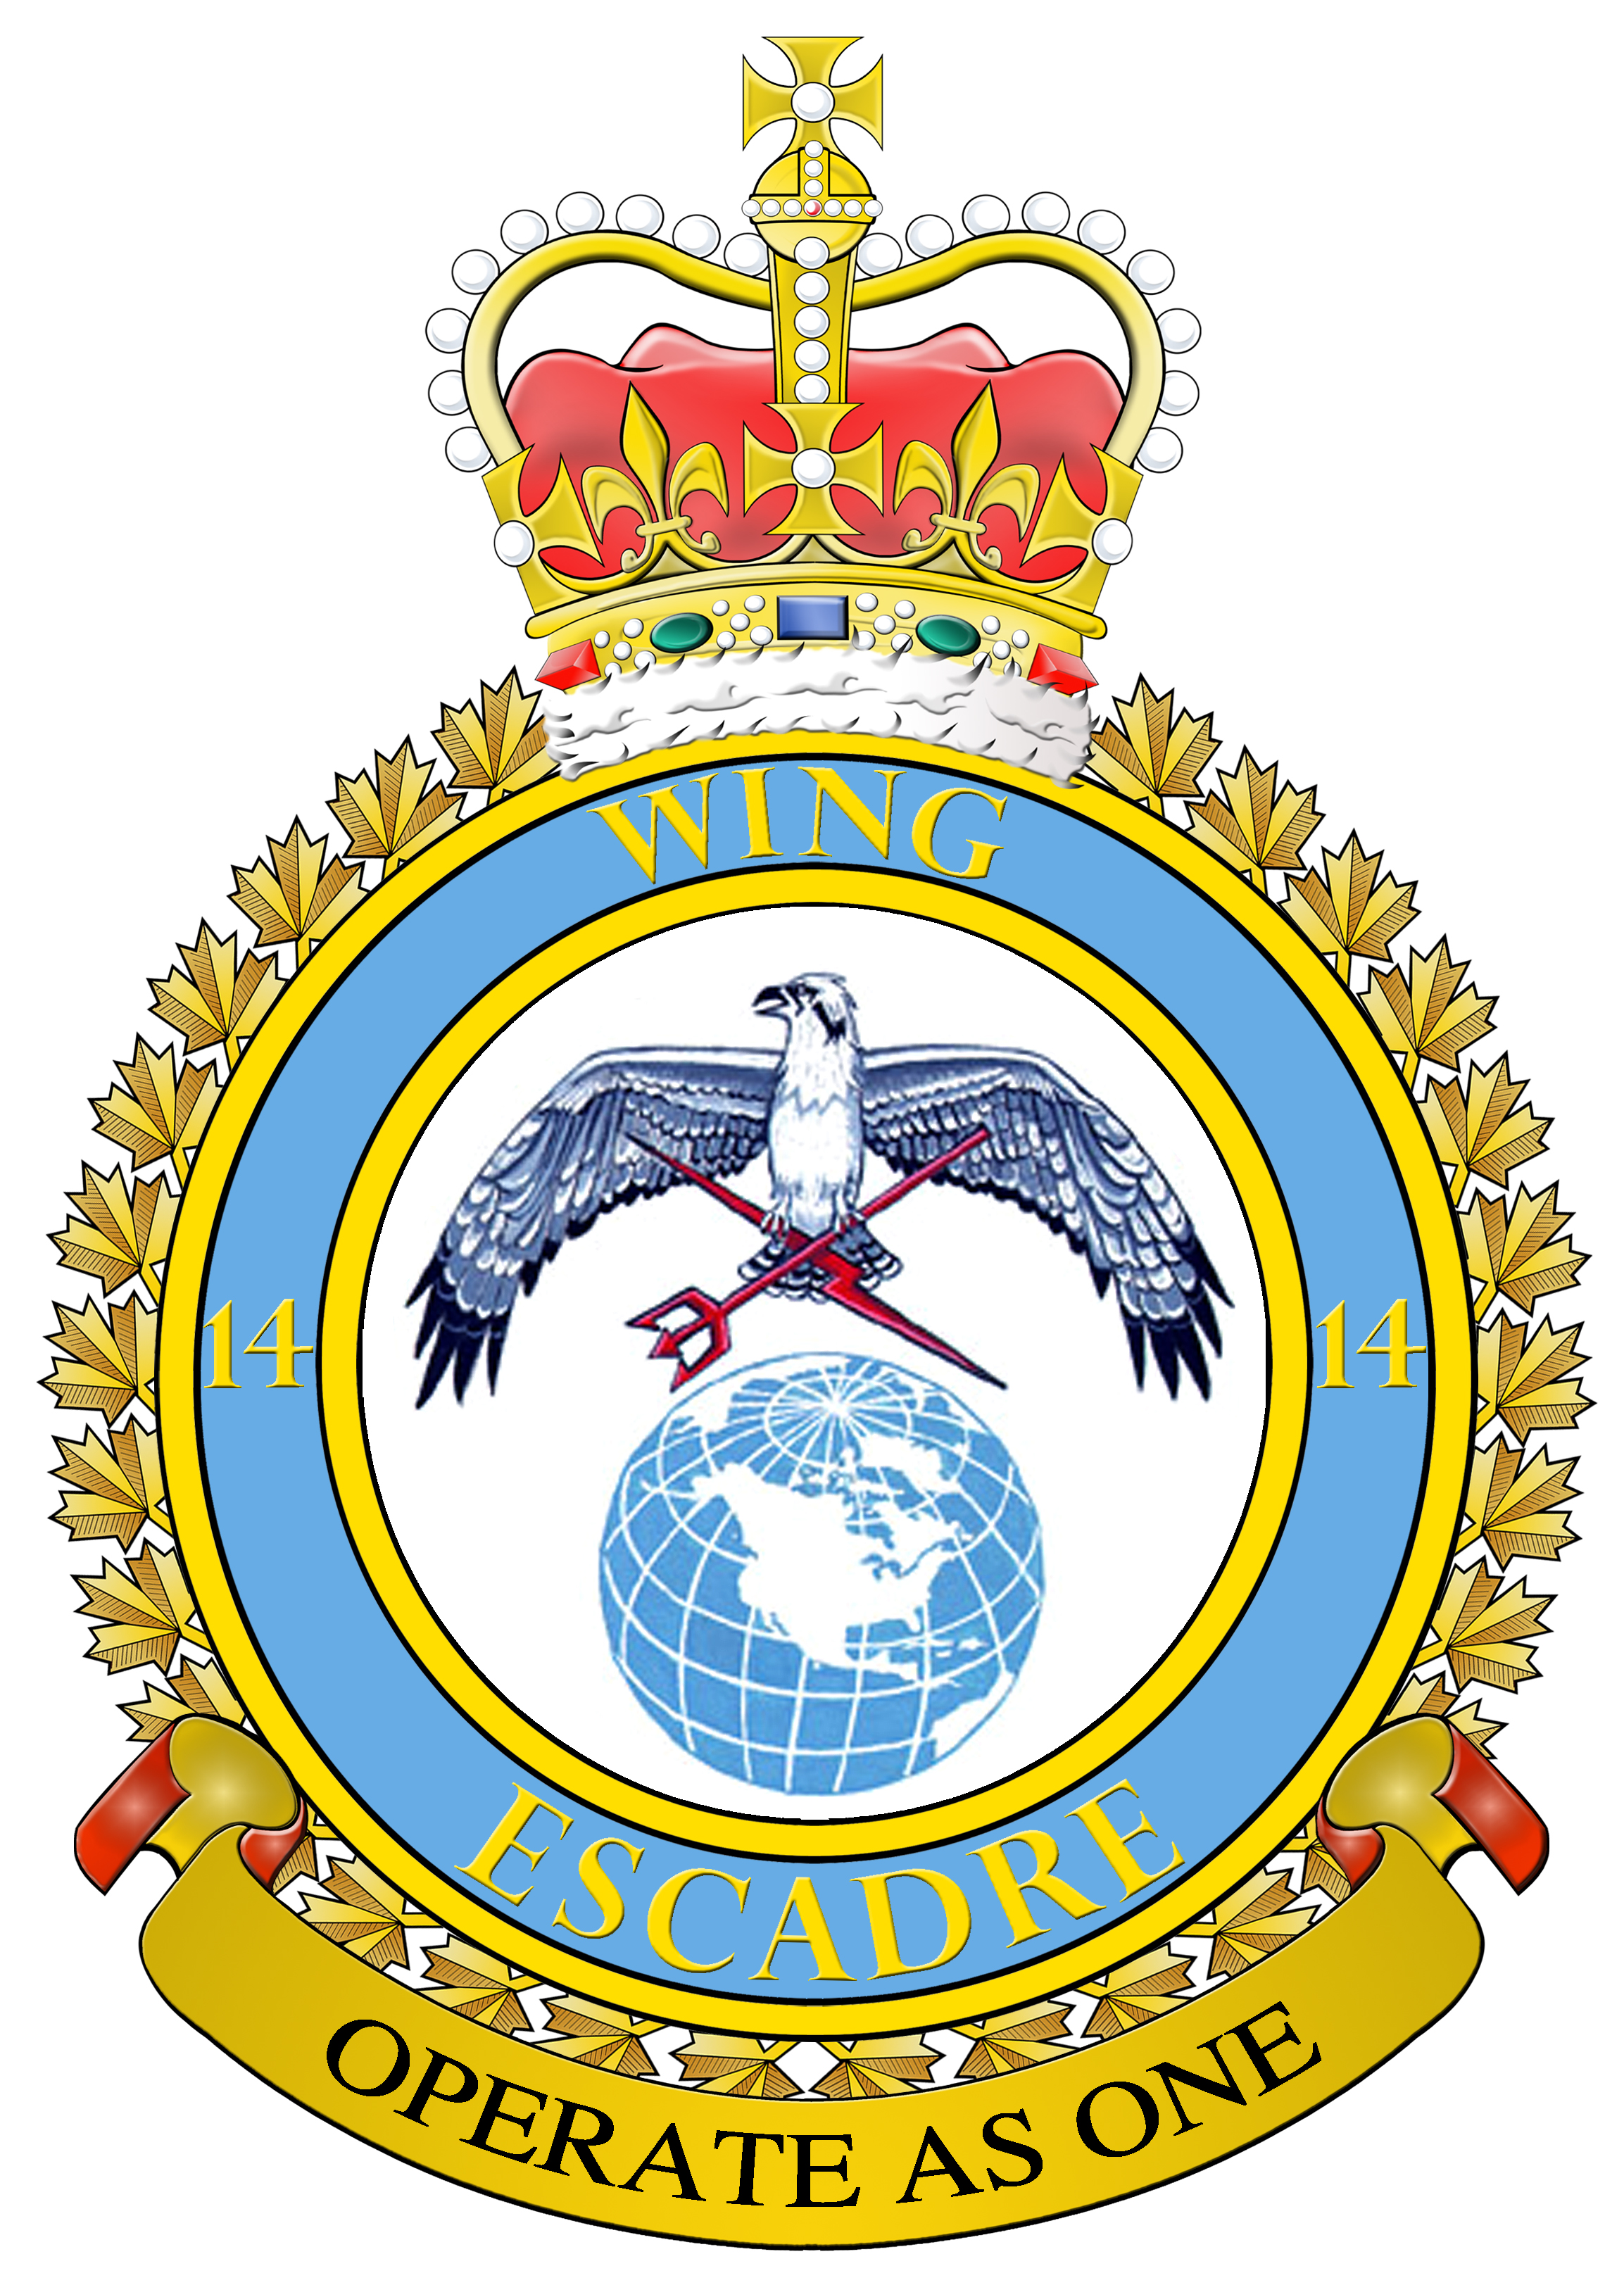 14 Wing crest